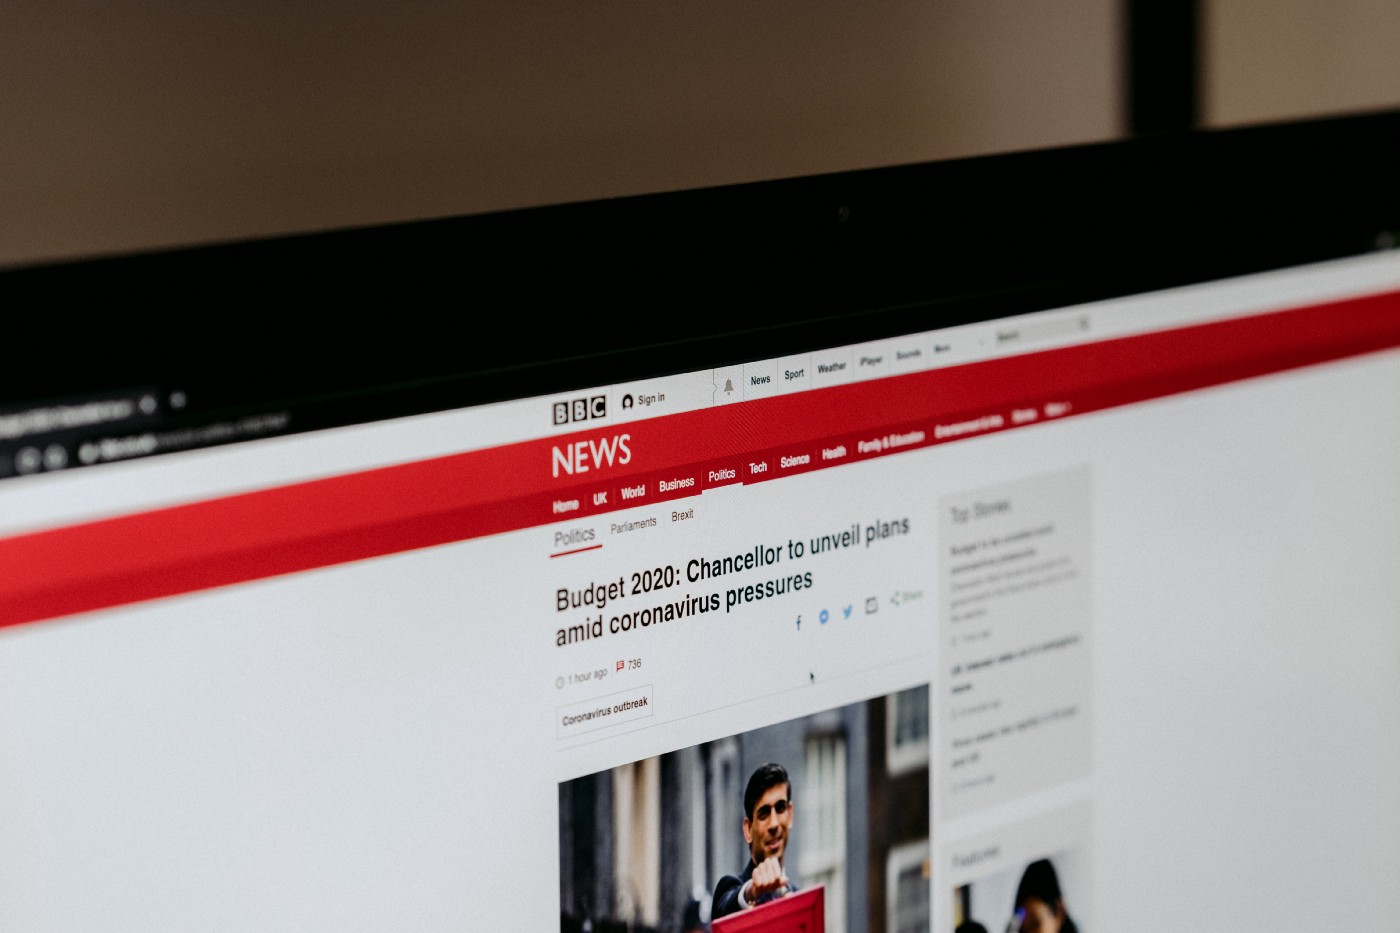 Picture of the BBC News website